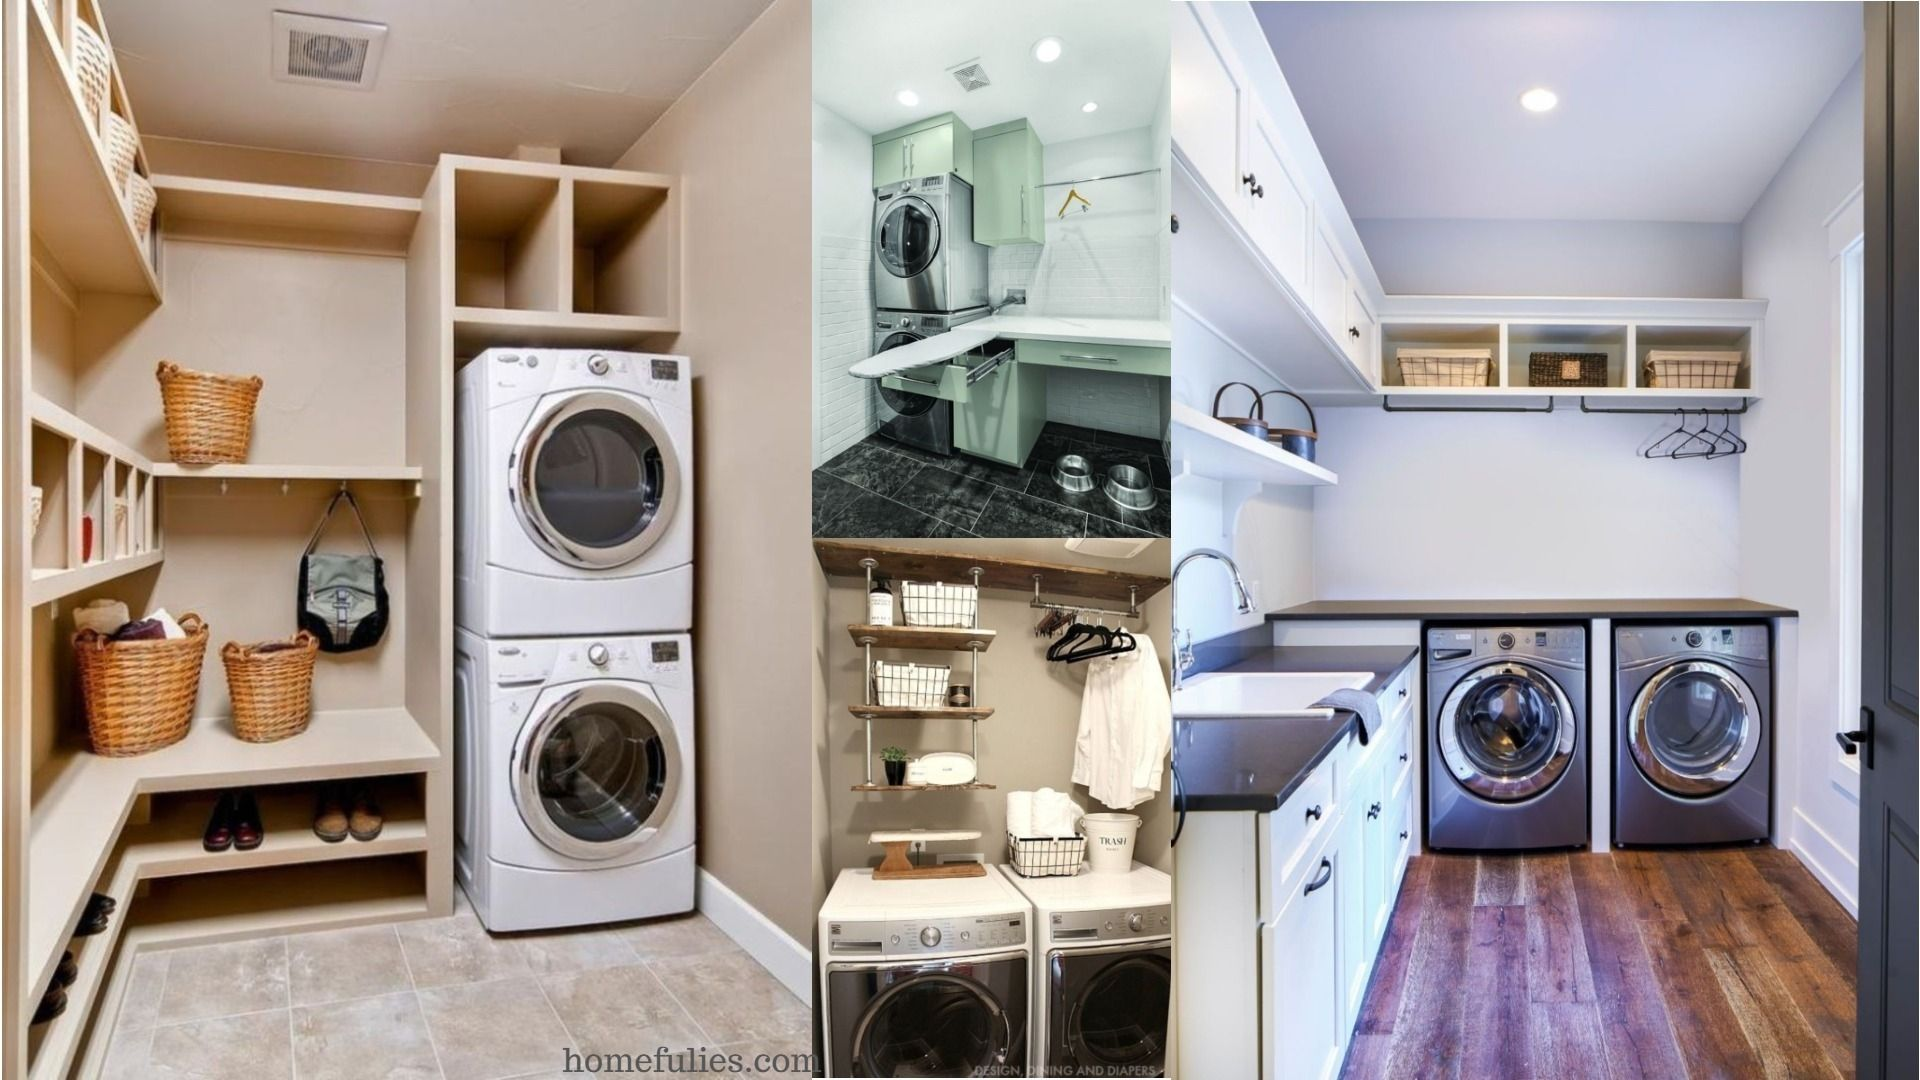 Awesome 47 Genius Laundry Room Hacks That Beyond Imagination Httphomefuliescom